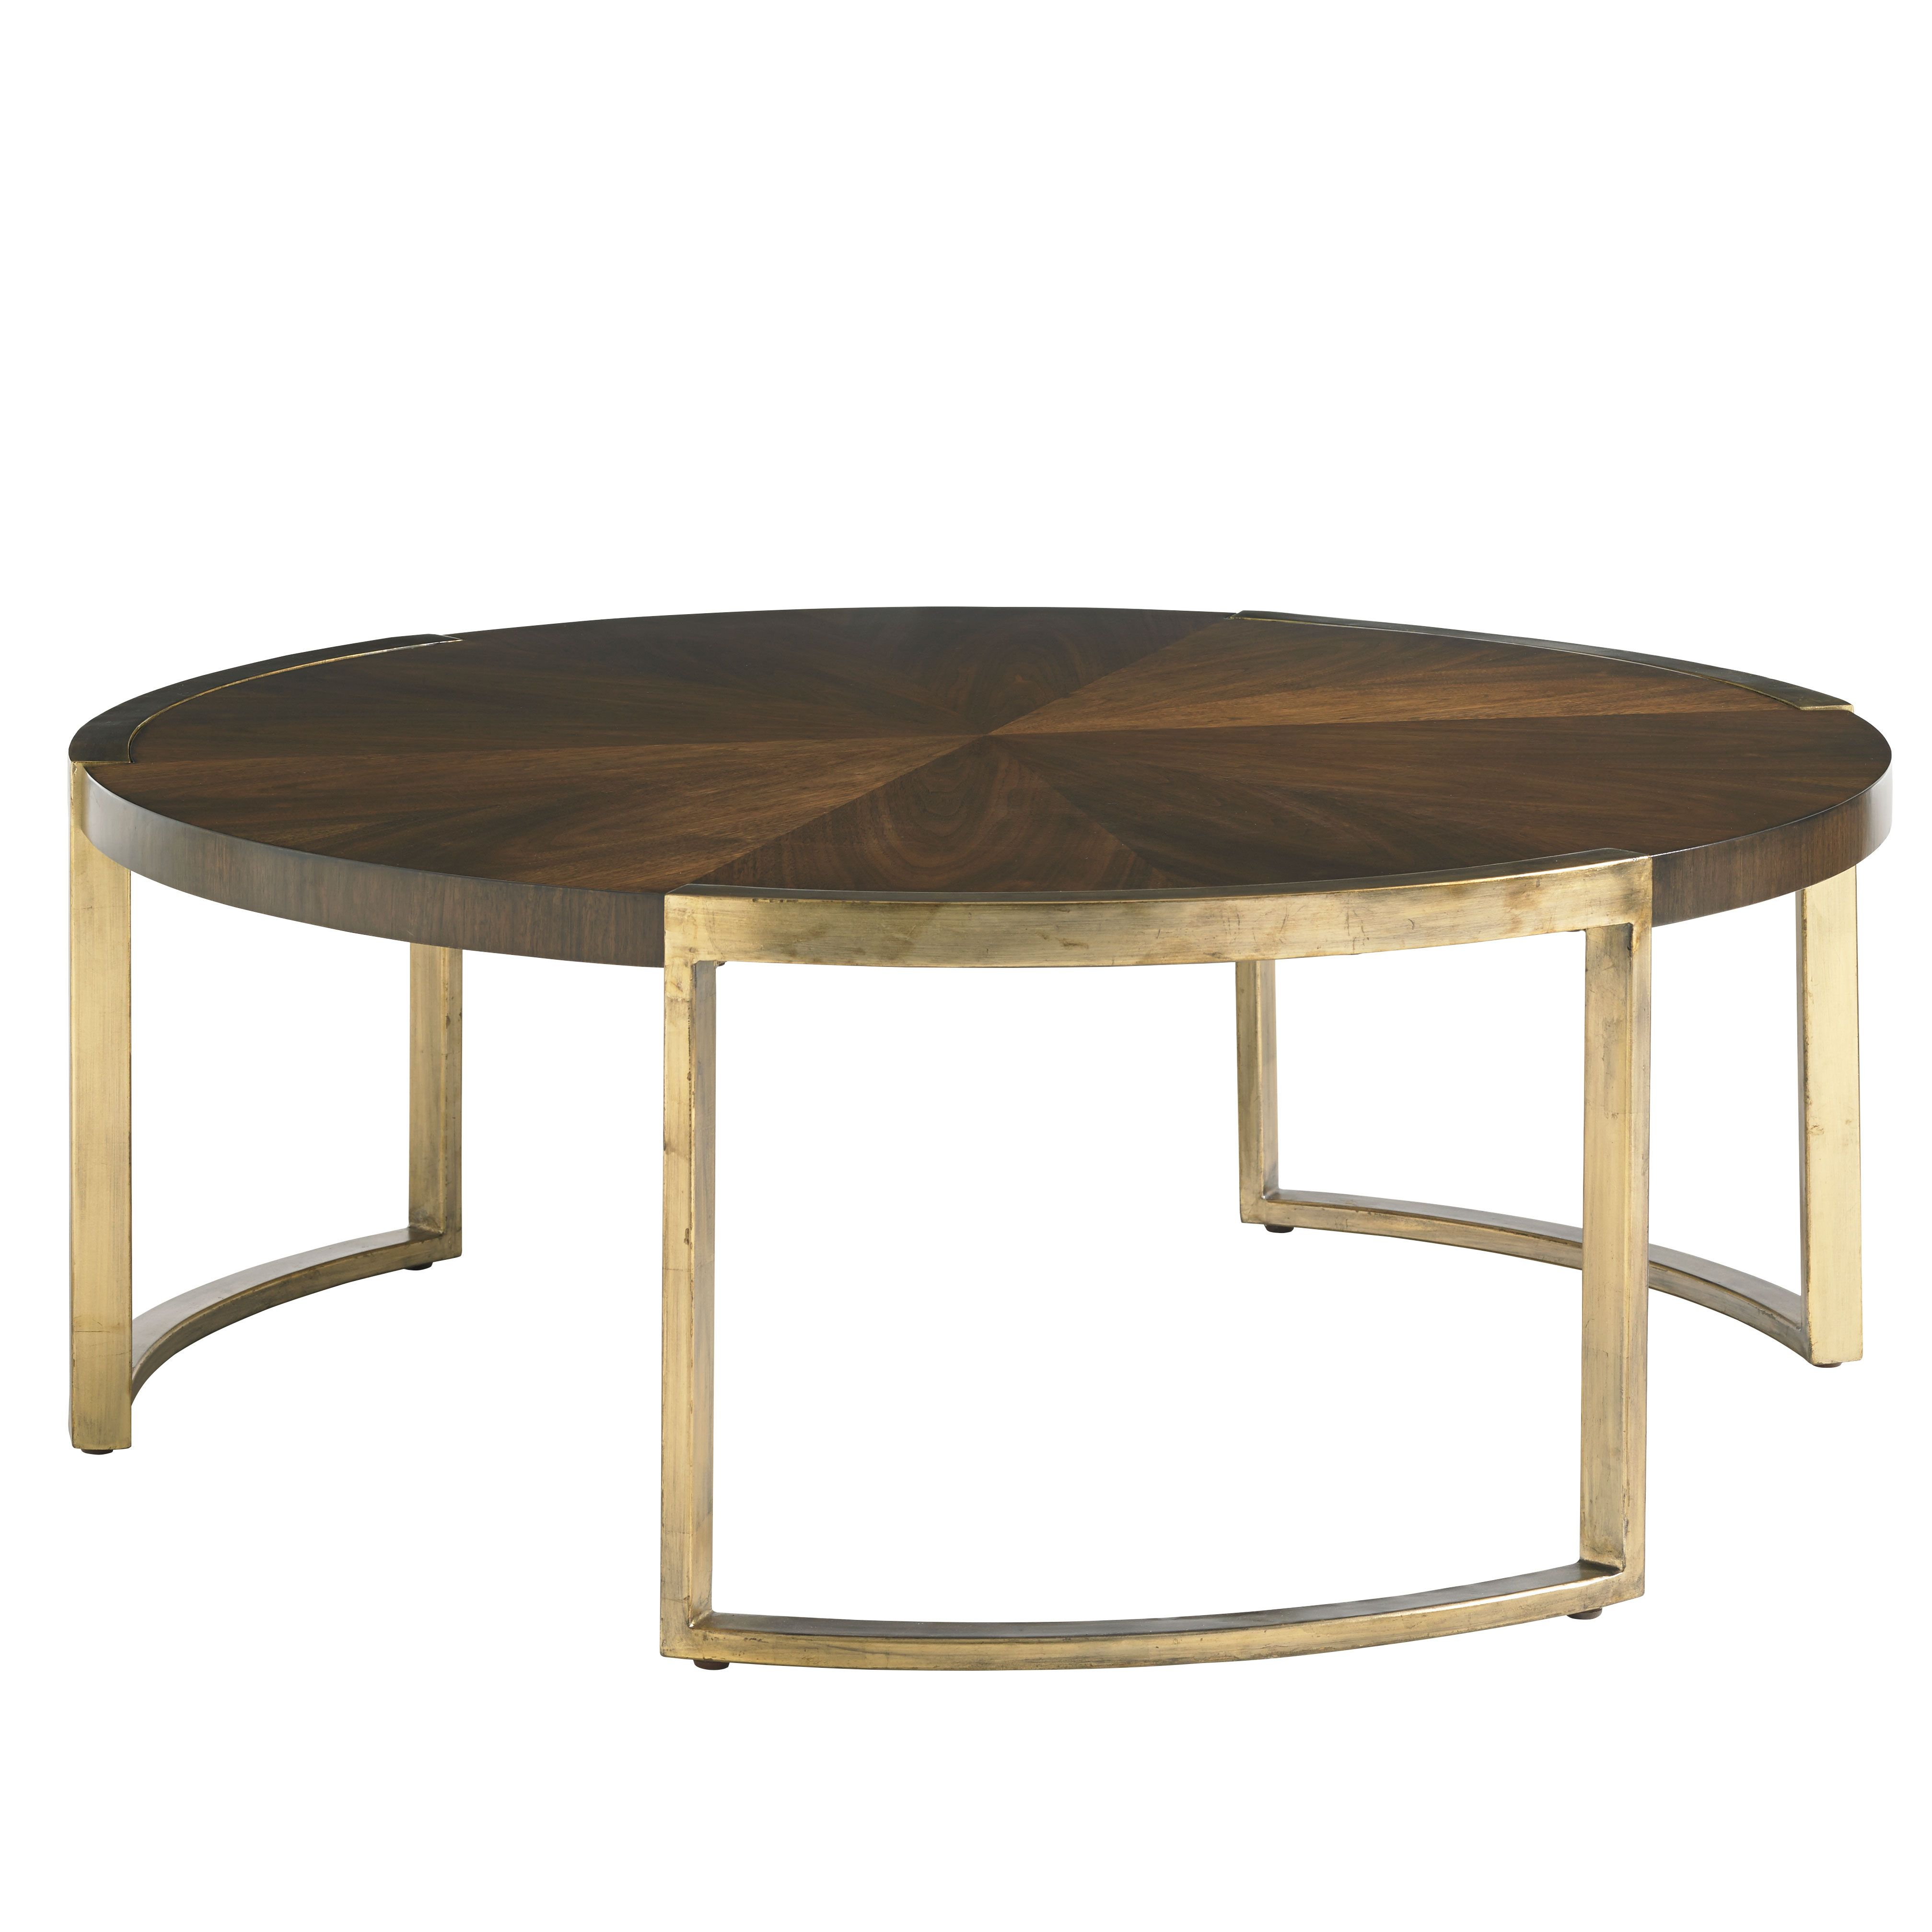 Chantal Modern Classic Walnut Gold Leaf Cocktail Table Eclectic Coffee Tables Table French Country Furniture [ 4030 x 4030 Pixel ]